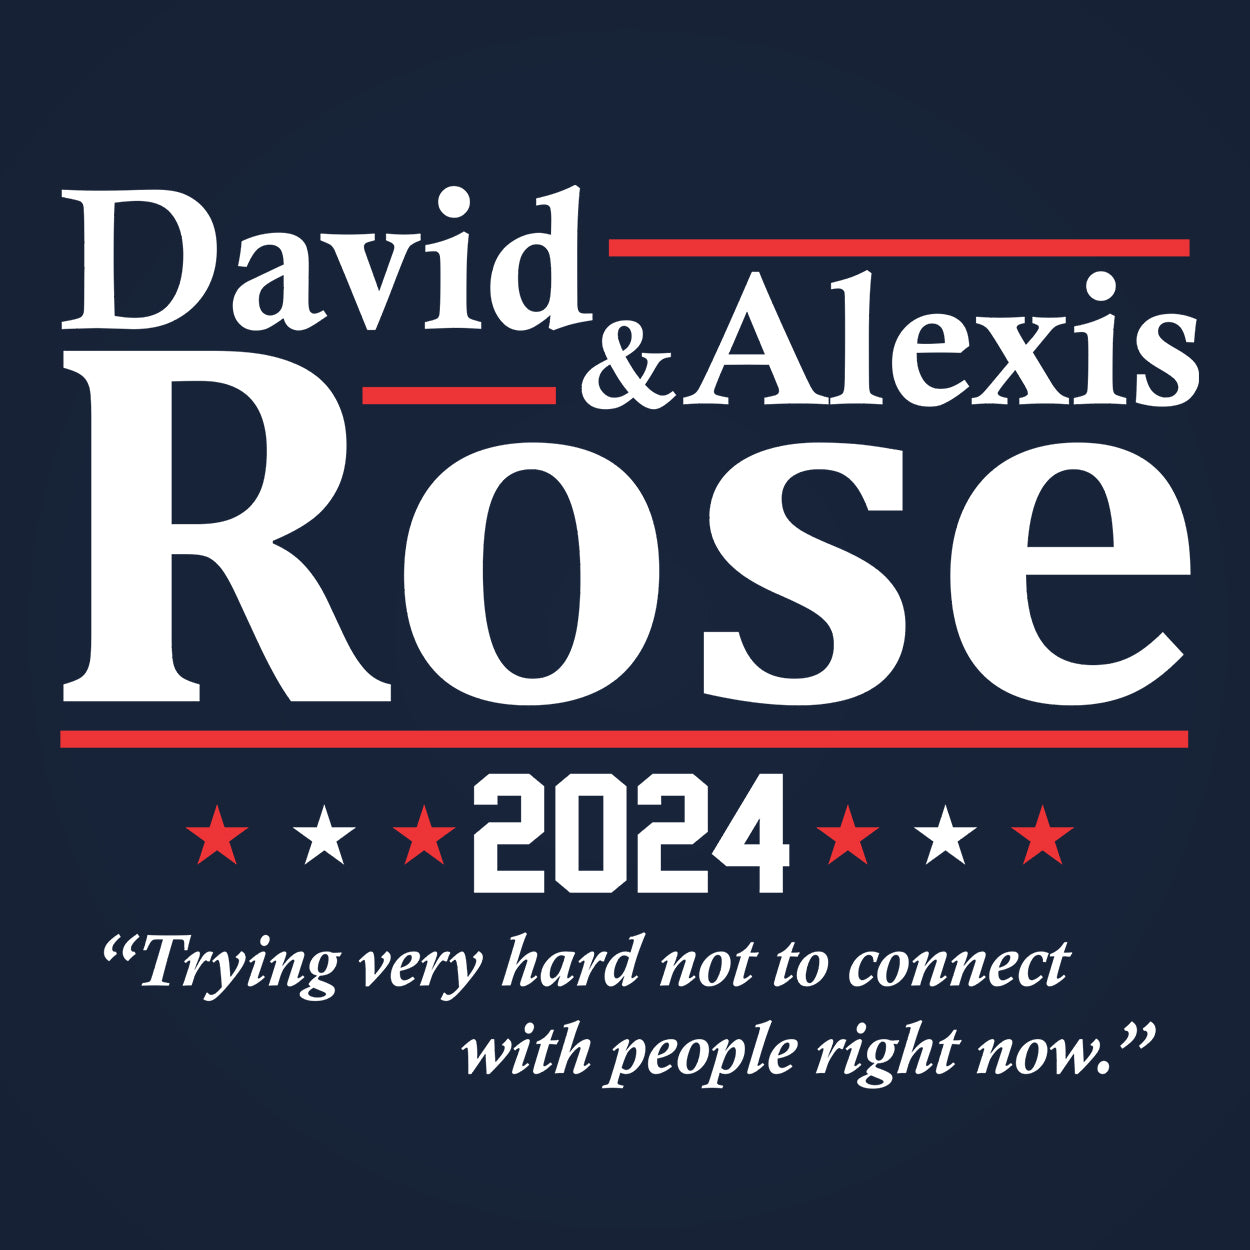 David & Alexis Rose 2020 Election